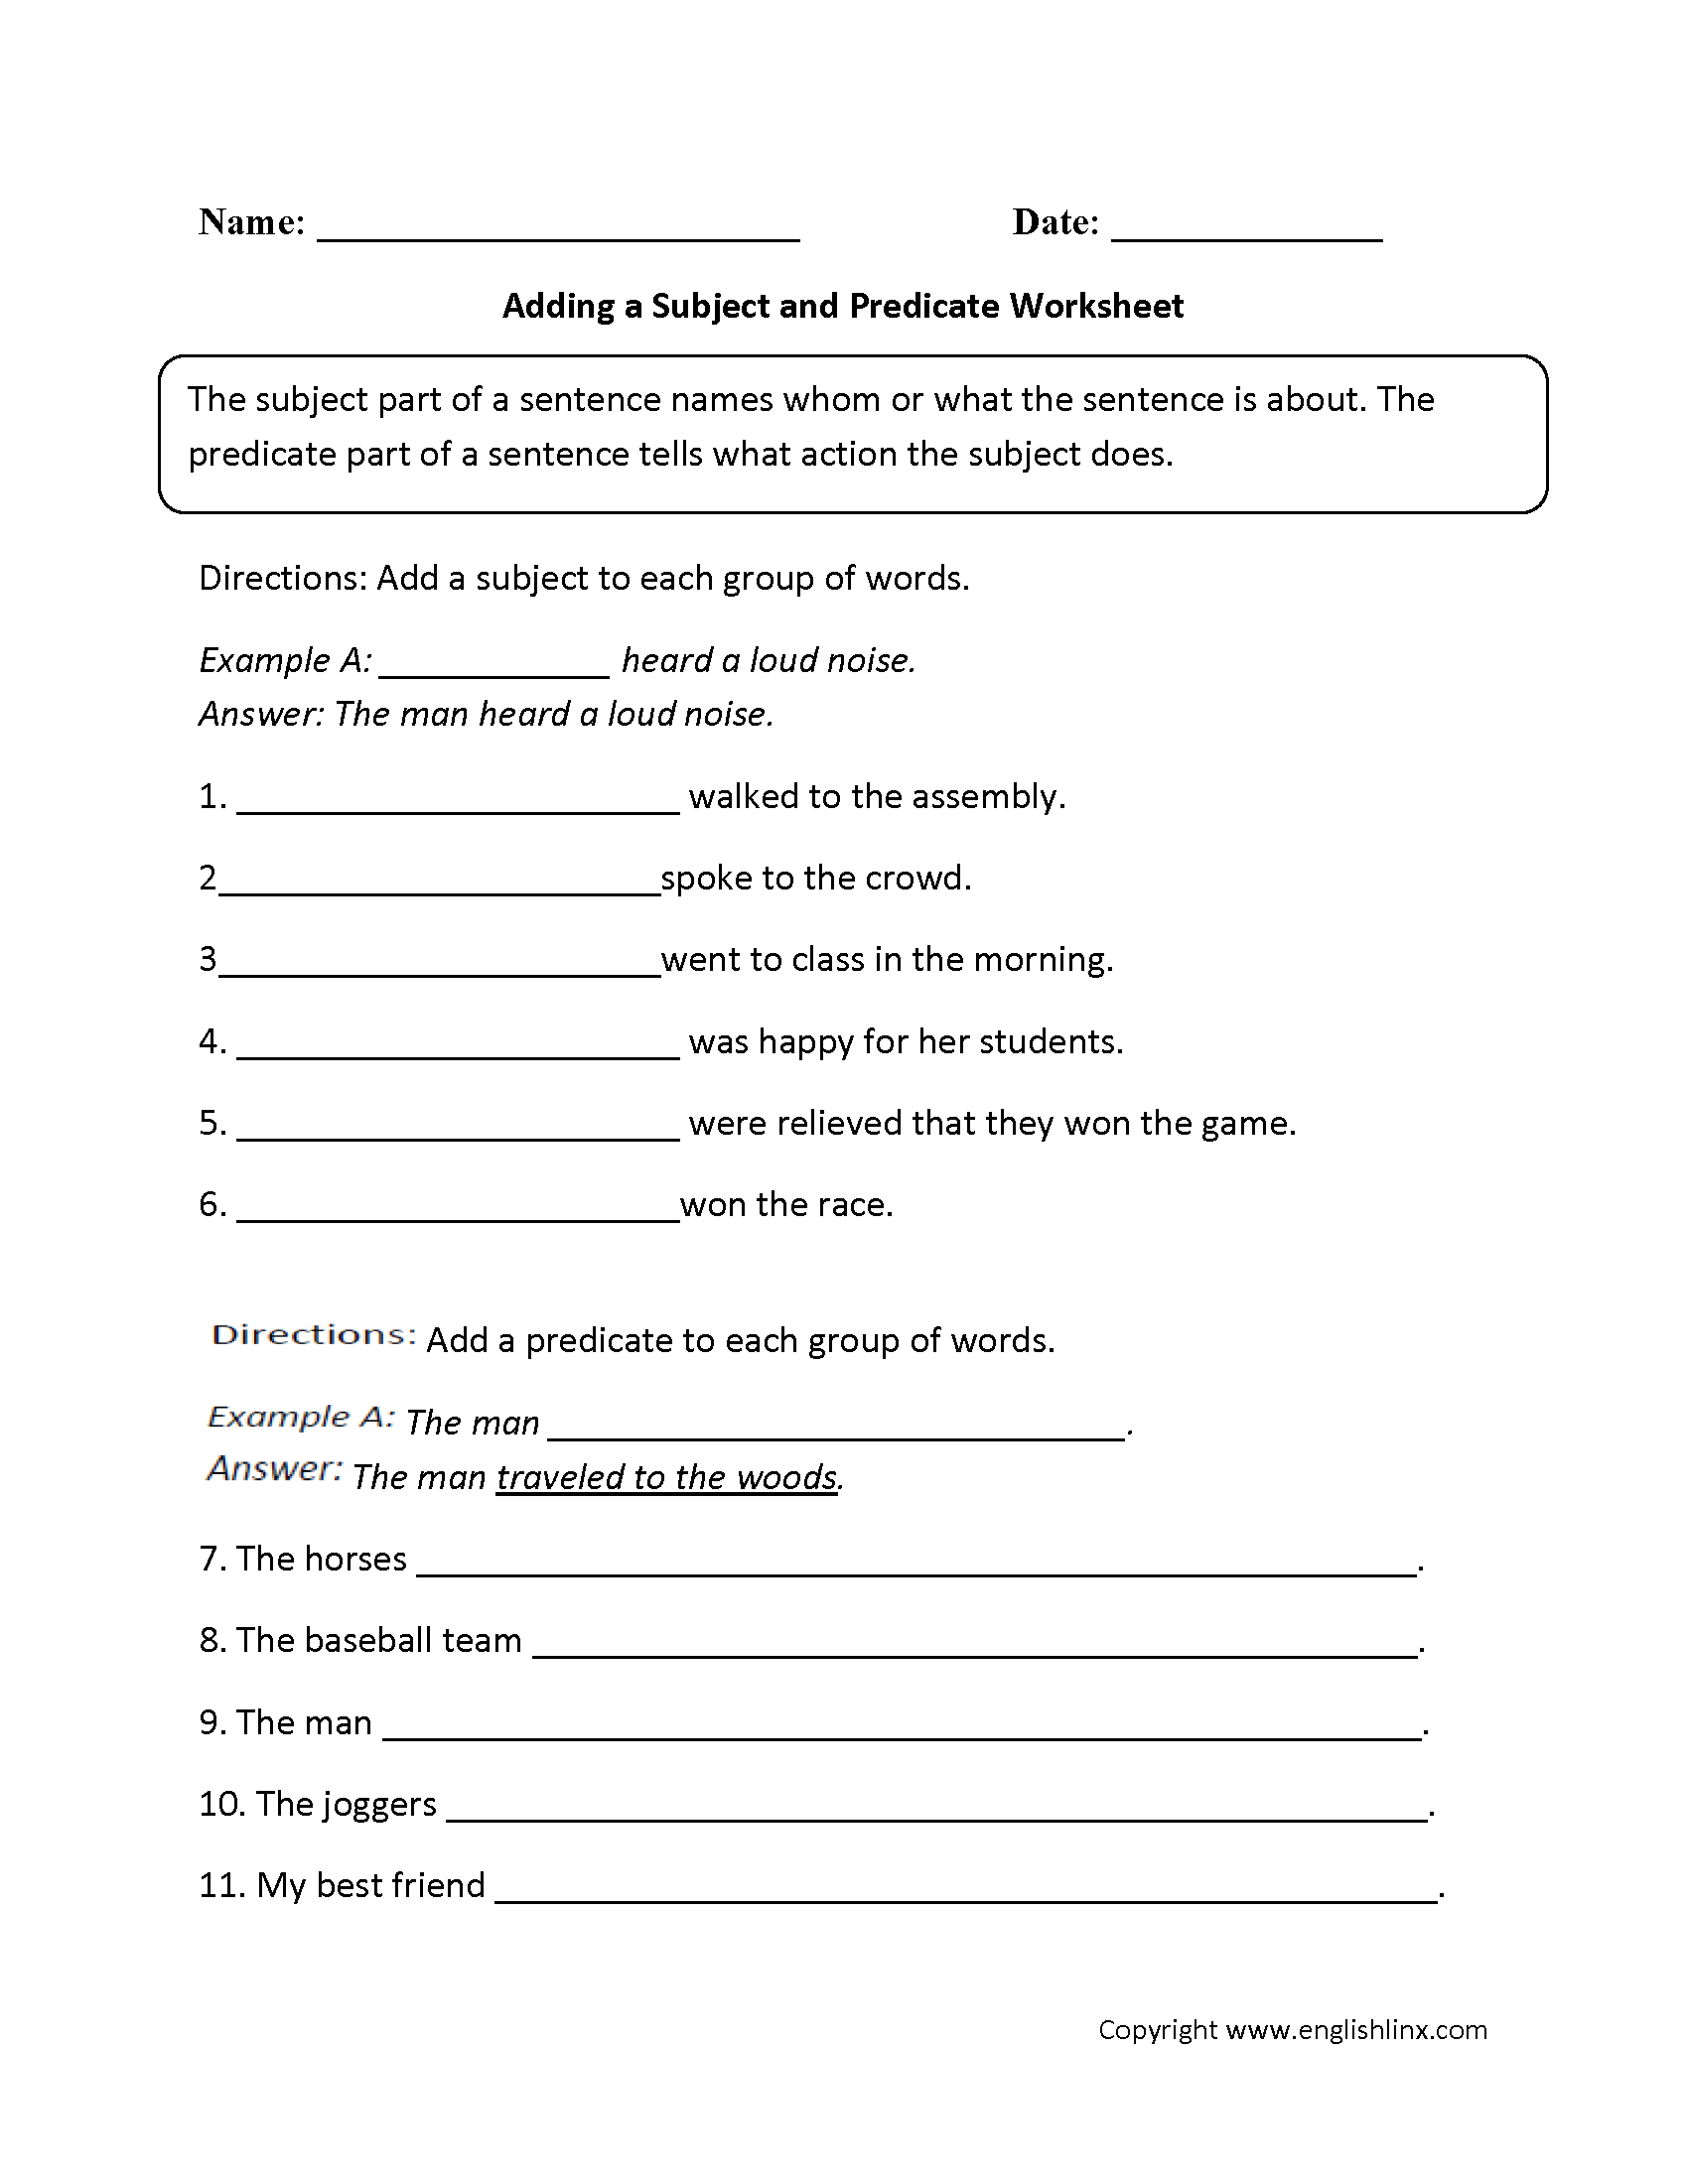 Worksheets Language Arts Worksheets For 6th Grade adding a subject and predicate worksheet englishlinx com board writing ideas